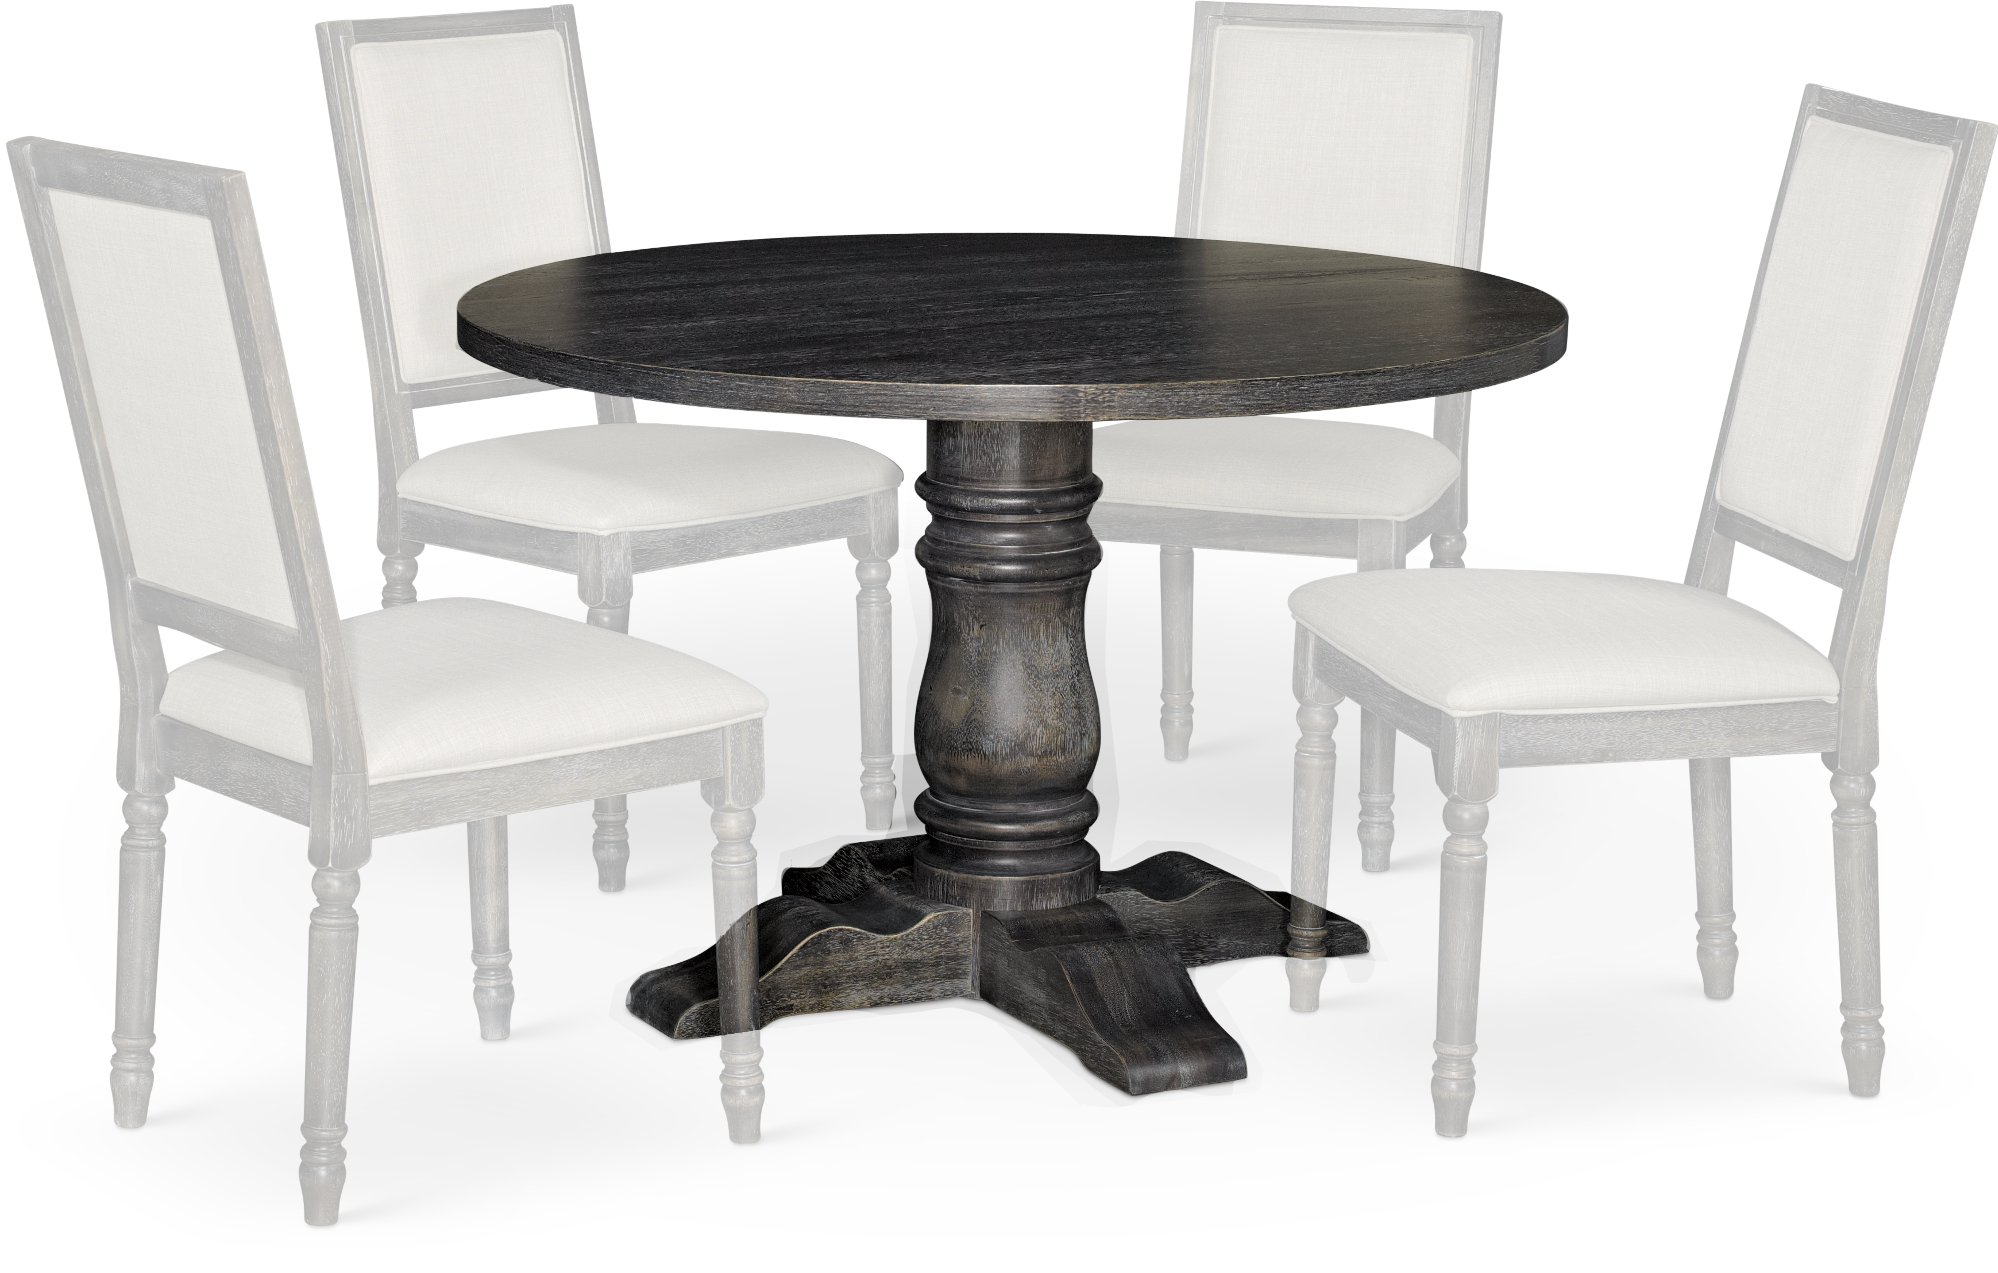 Dove Gray 5 Piece Dining Set with Round Table Muses RC  : Dove Gray Round Dining Table Muses rcwilley image1 from rcwilley.com size 2000 x 1273 jpeg 341kB